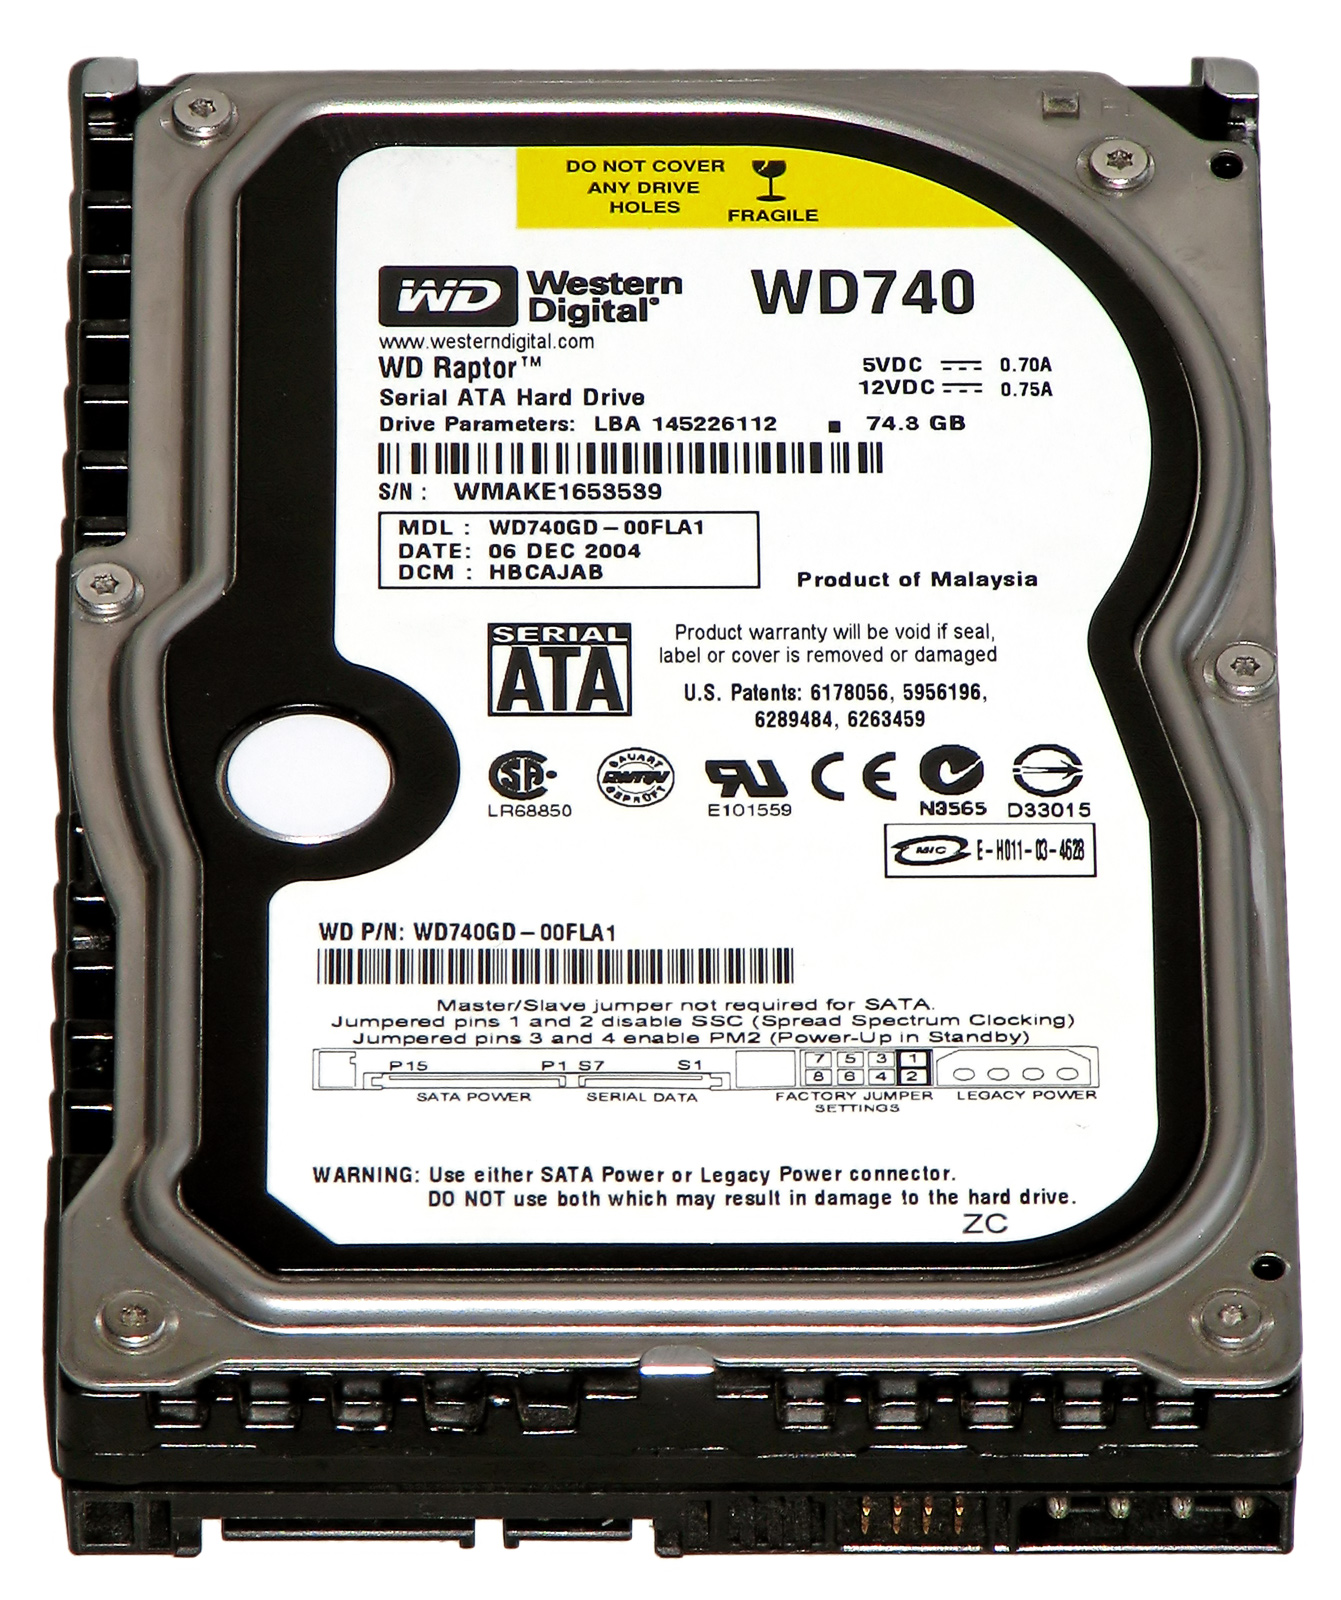 Western Digital Raptor Wikipedia Hardisk Pc 250 Gb Seagate Sata